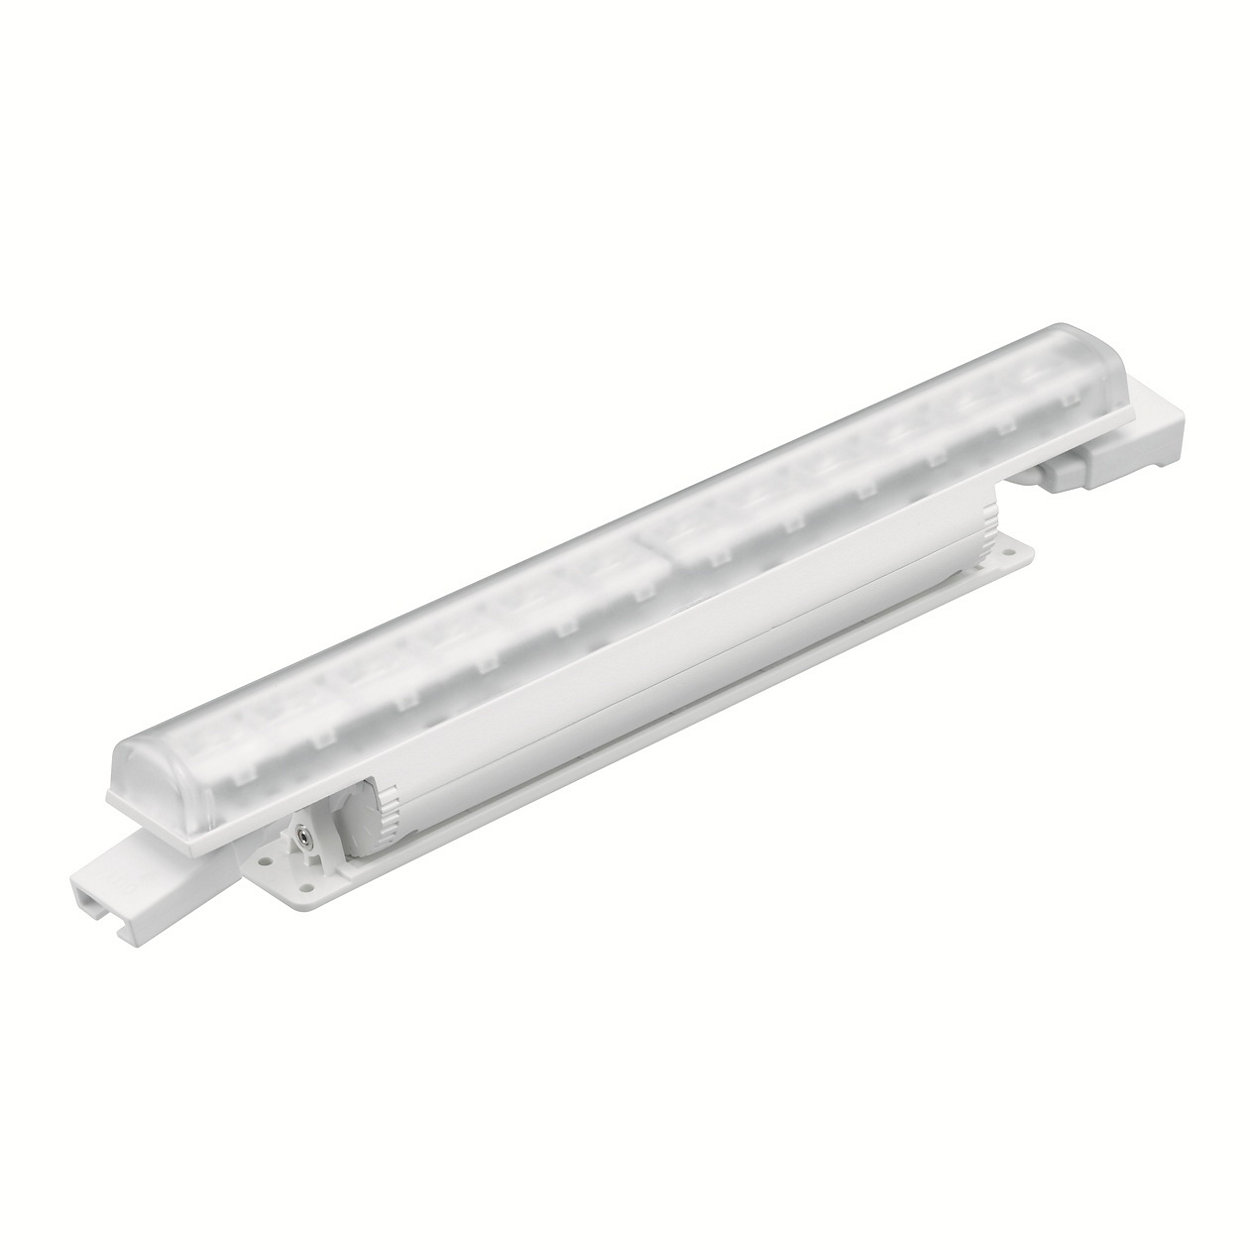 eW Fuse Powercore – ultra-compact, high-performance LED grazing fixture